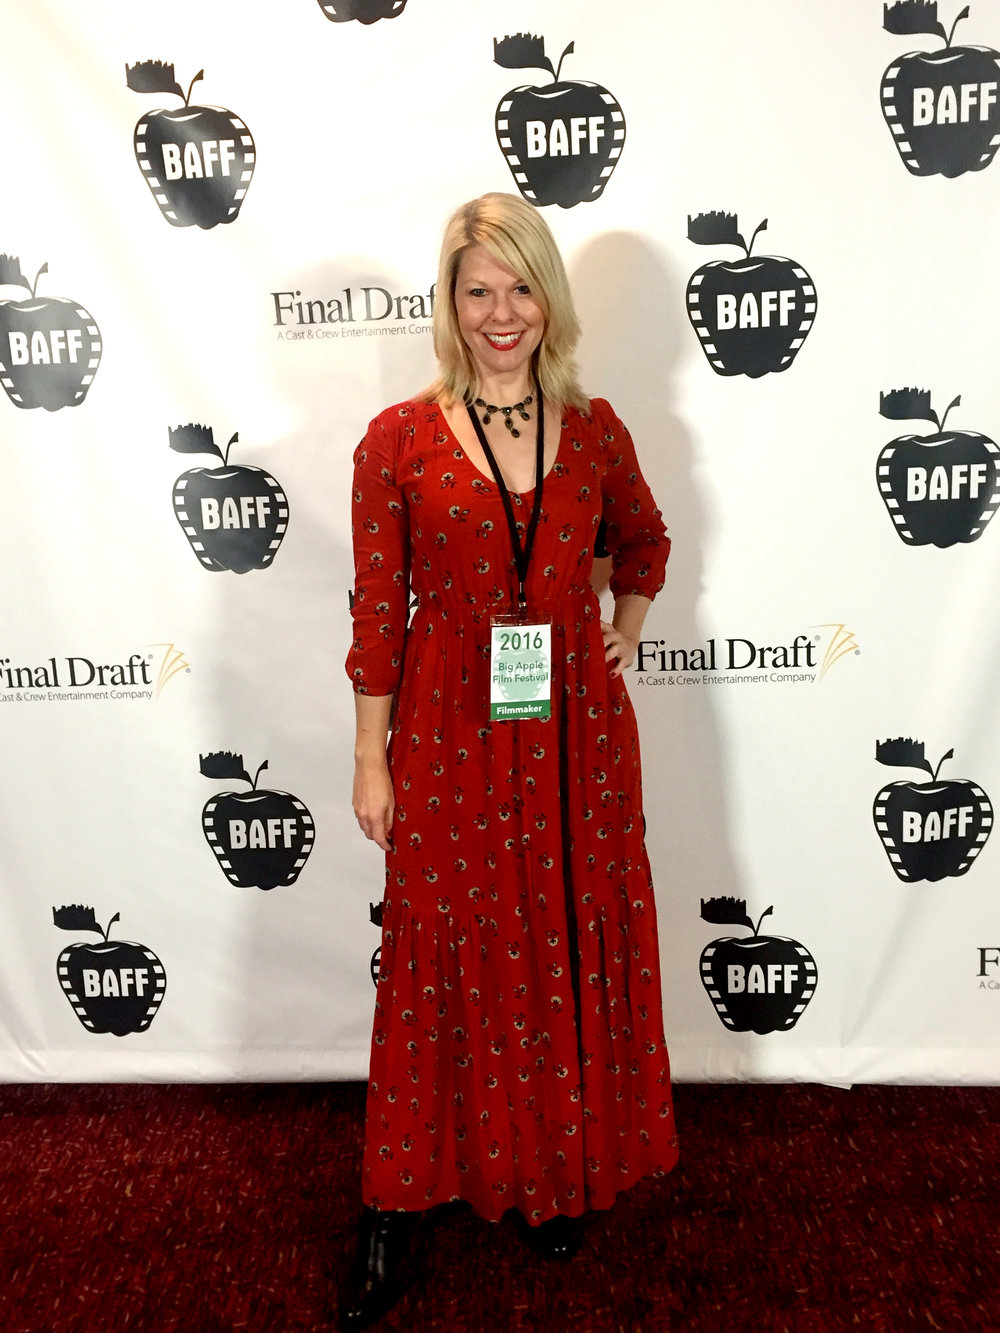 The Hoosac Writer/Director Matilda Szydagis at Big Apple Film Festival Red Carpet.